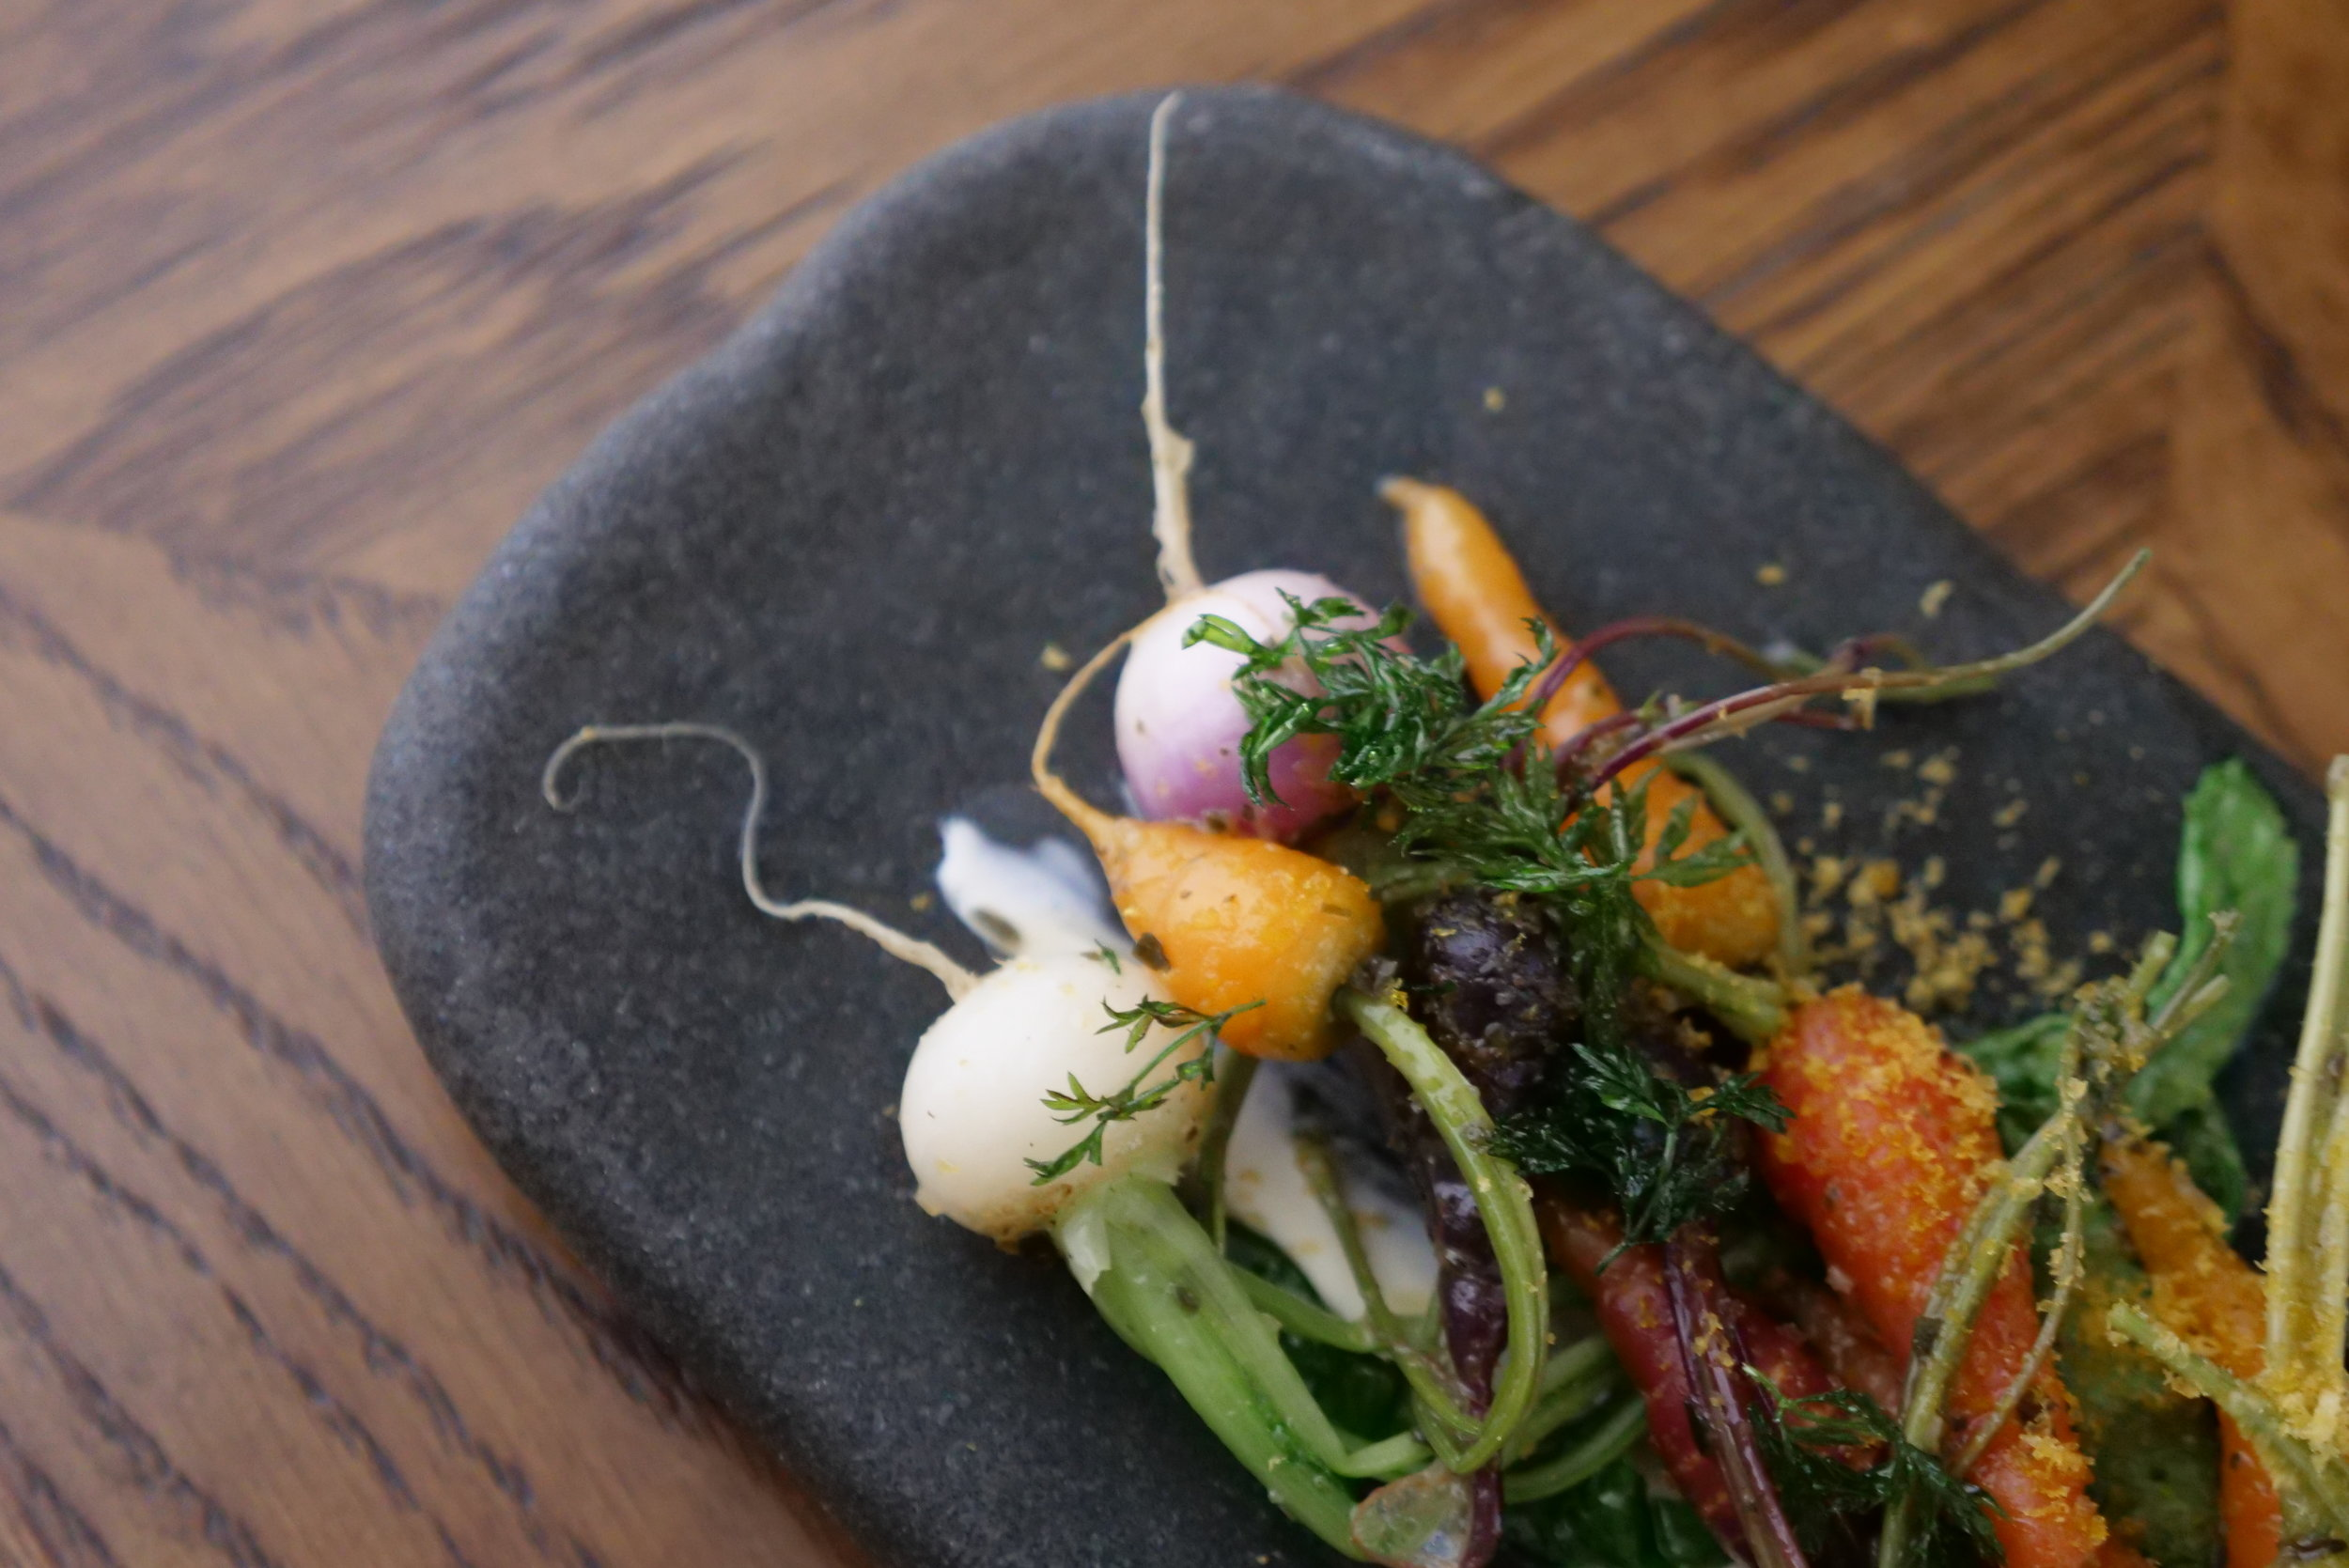 PETITE BOUCHE VEGETABLES, KOUMBOU, CREME FRAICHE, BOTAGO AND FRIED CARROT TOPS.